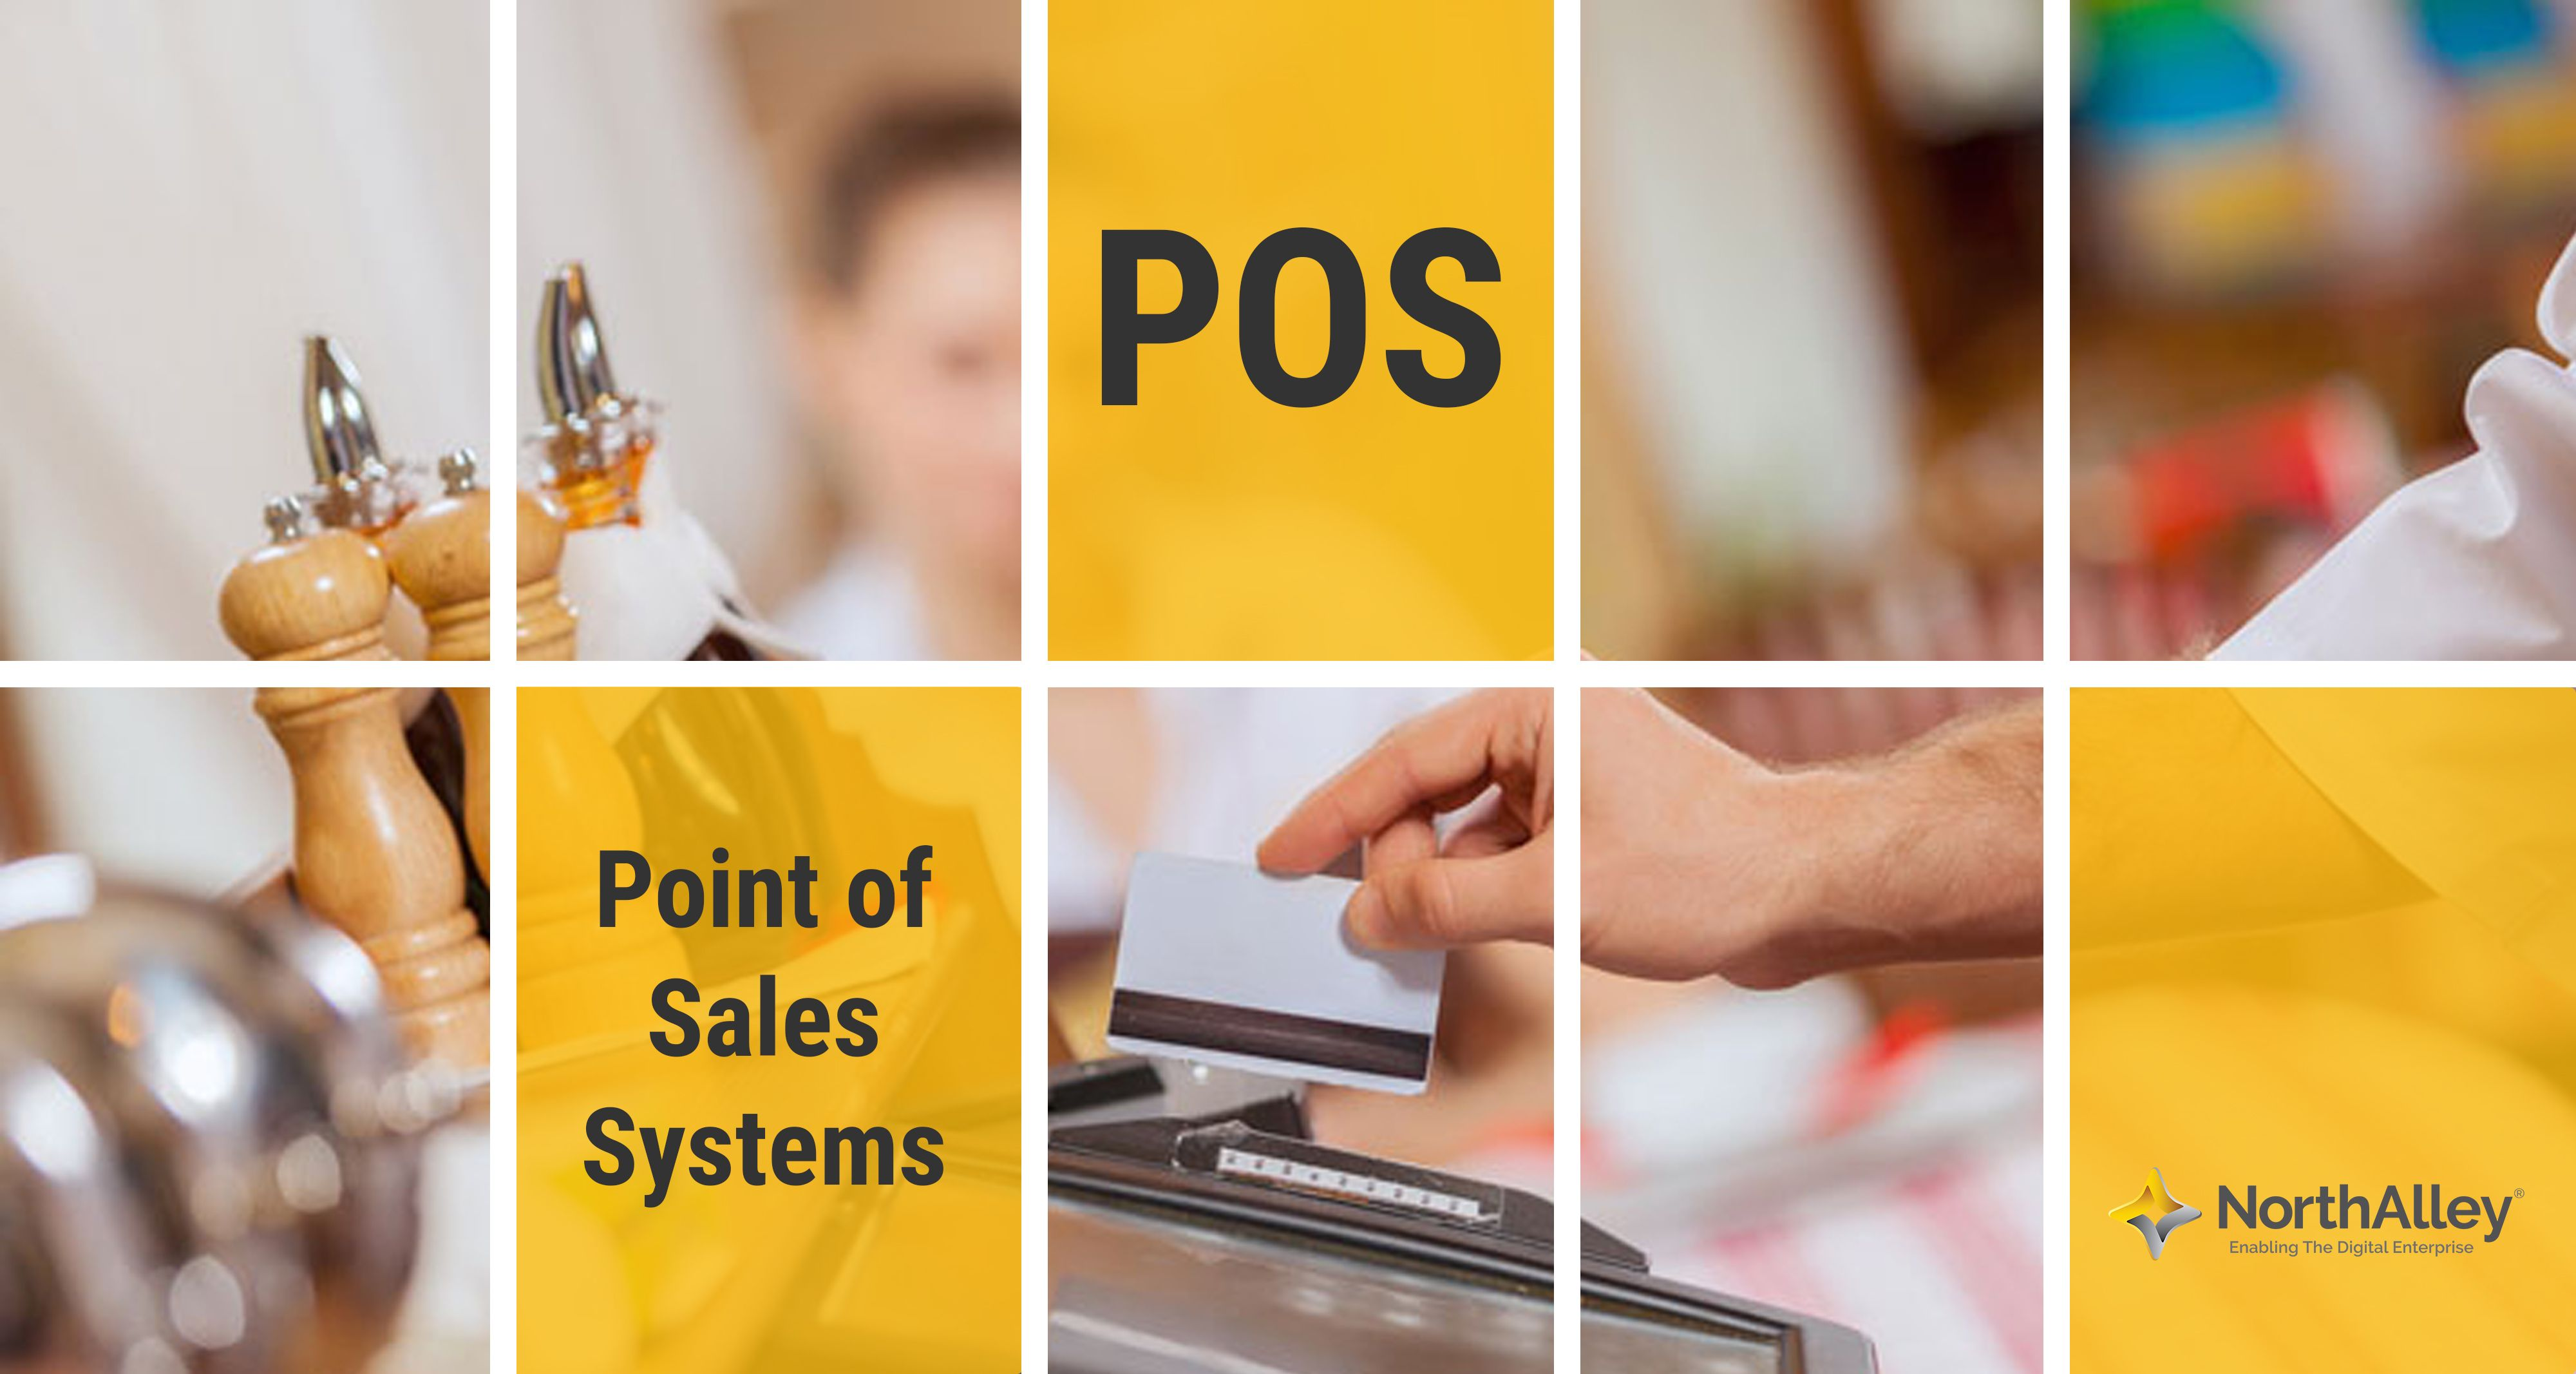 NorthAlley's Point of Sales System helps to optimize IT resources and  fulfill the needs of the business sector .